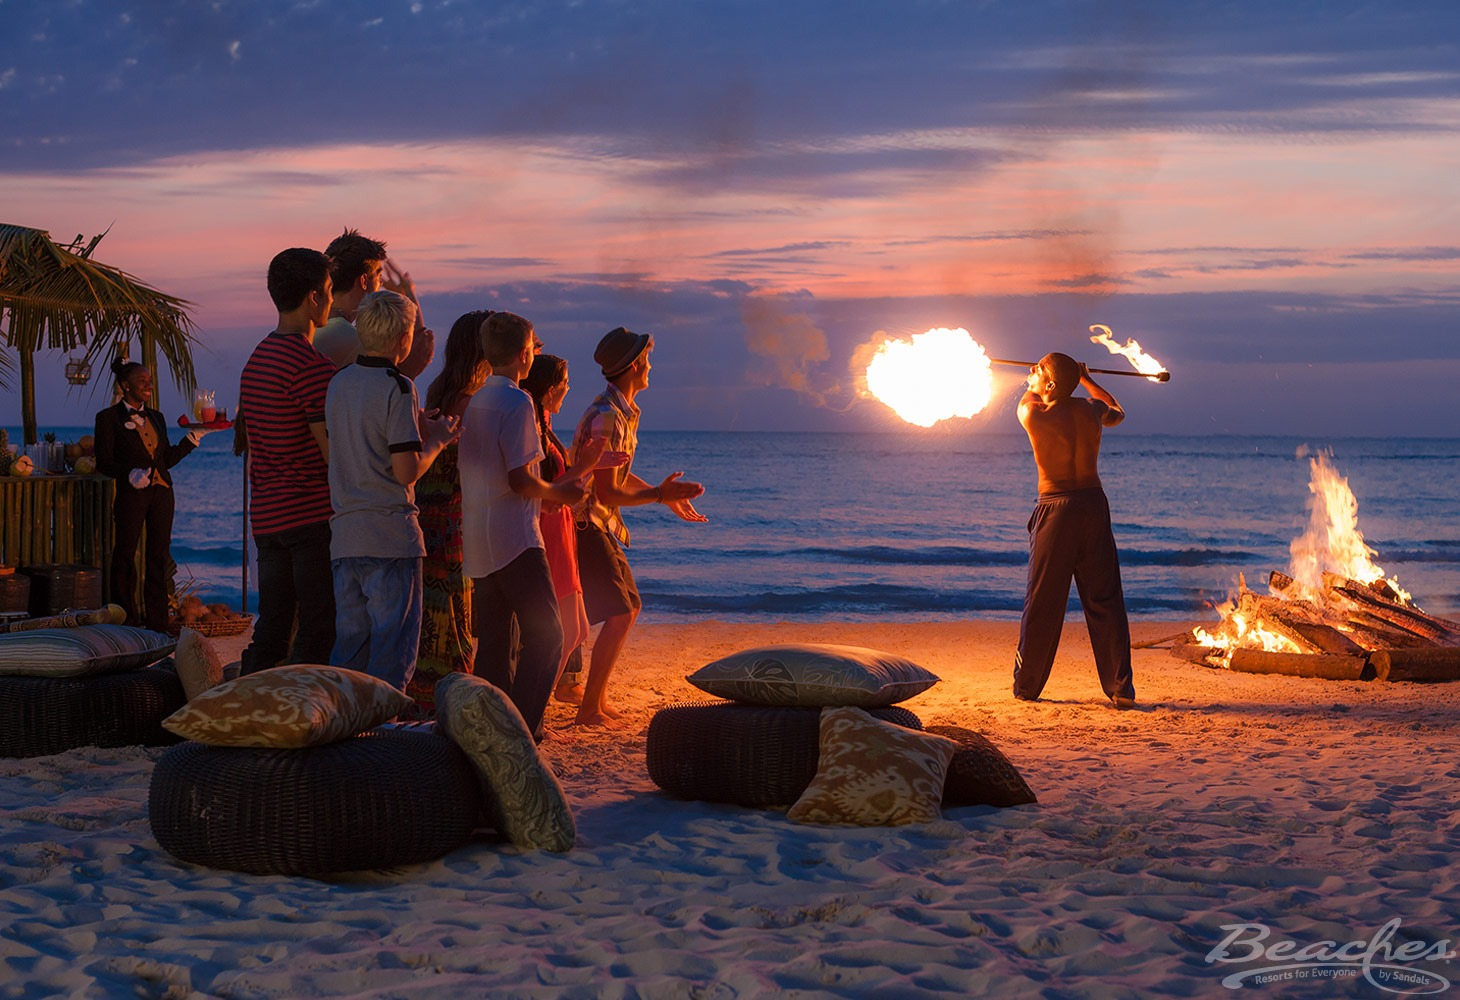 Entertainment for teens is includes at all Beaches resorts